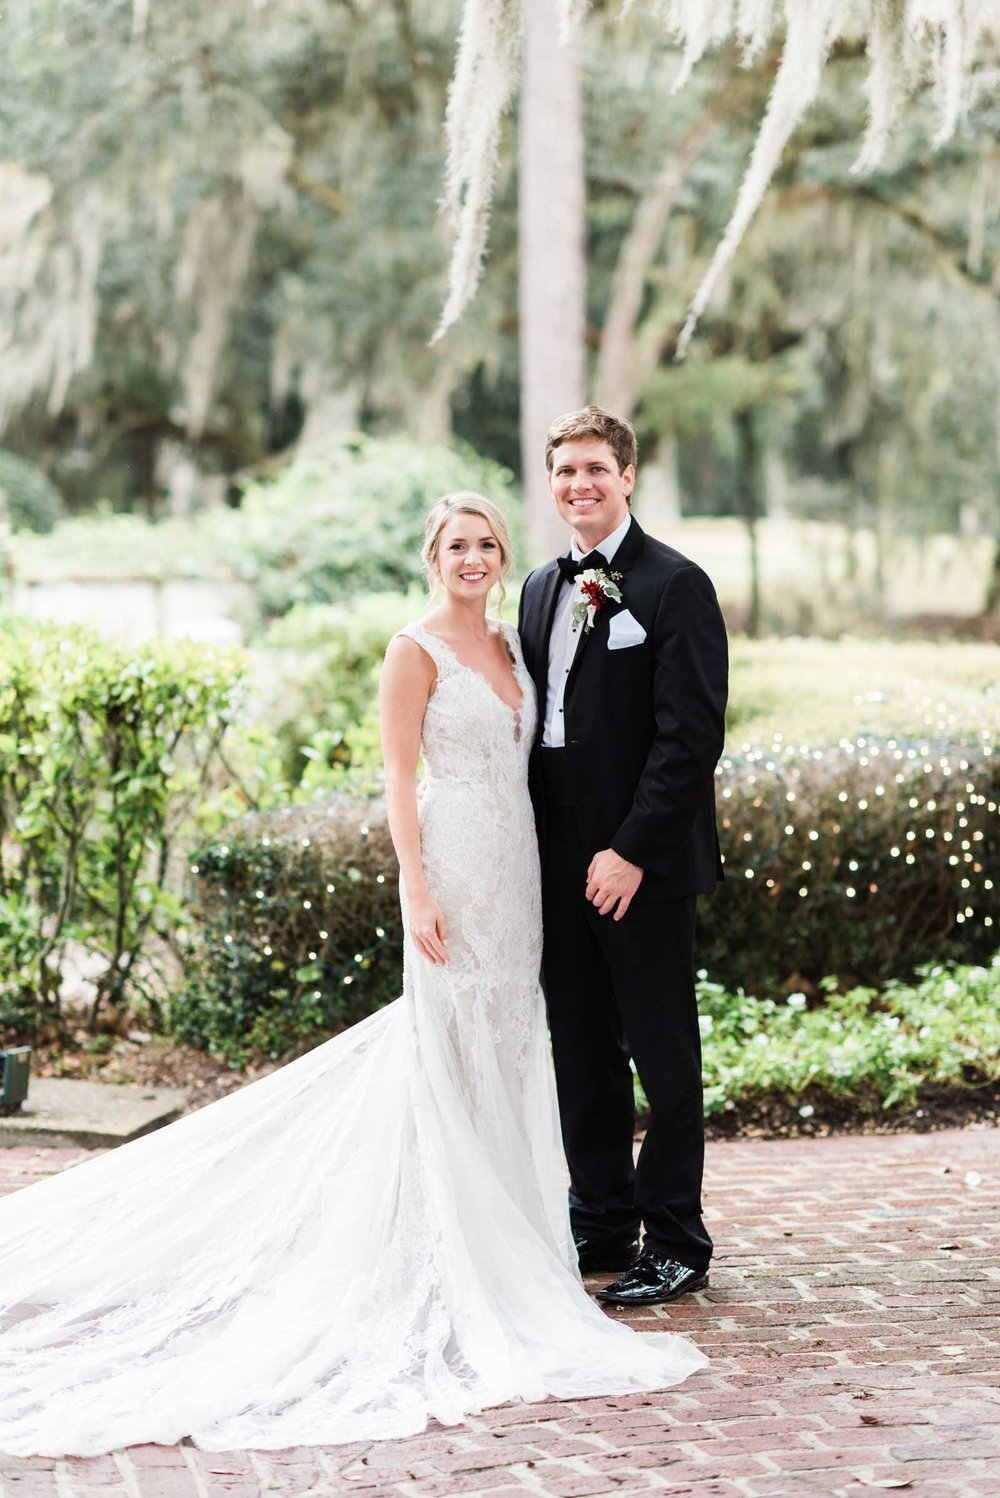 Wedding at Heritage Plantation in Pawley's Island_Markie Walden Photo-34.jpg